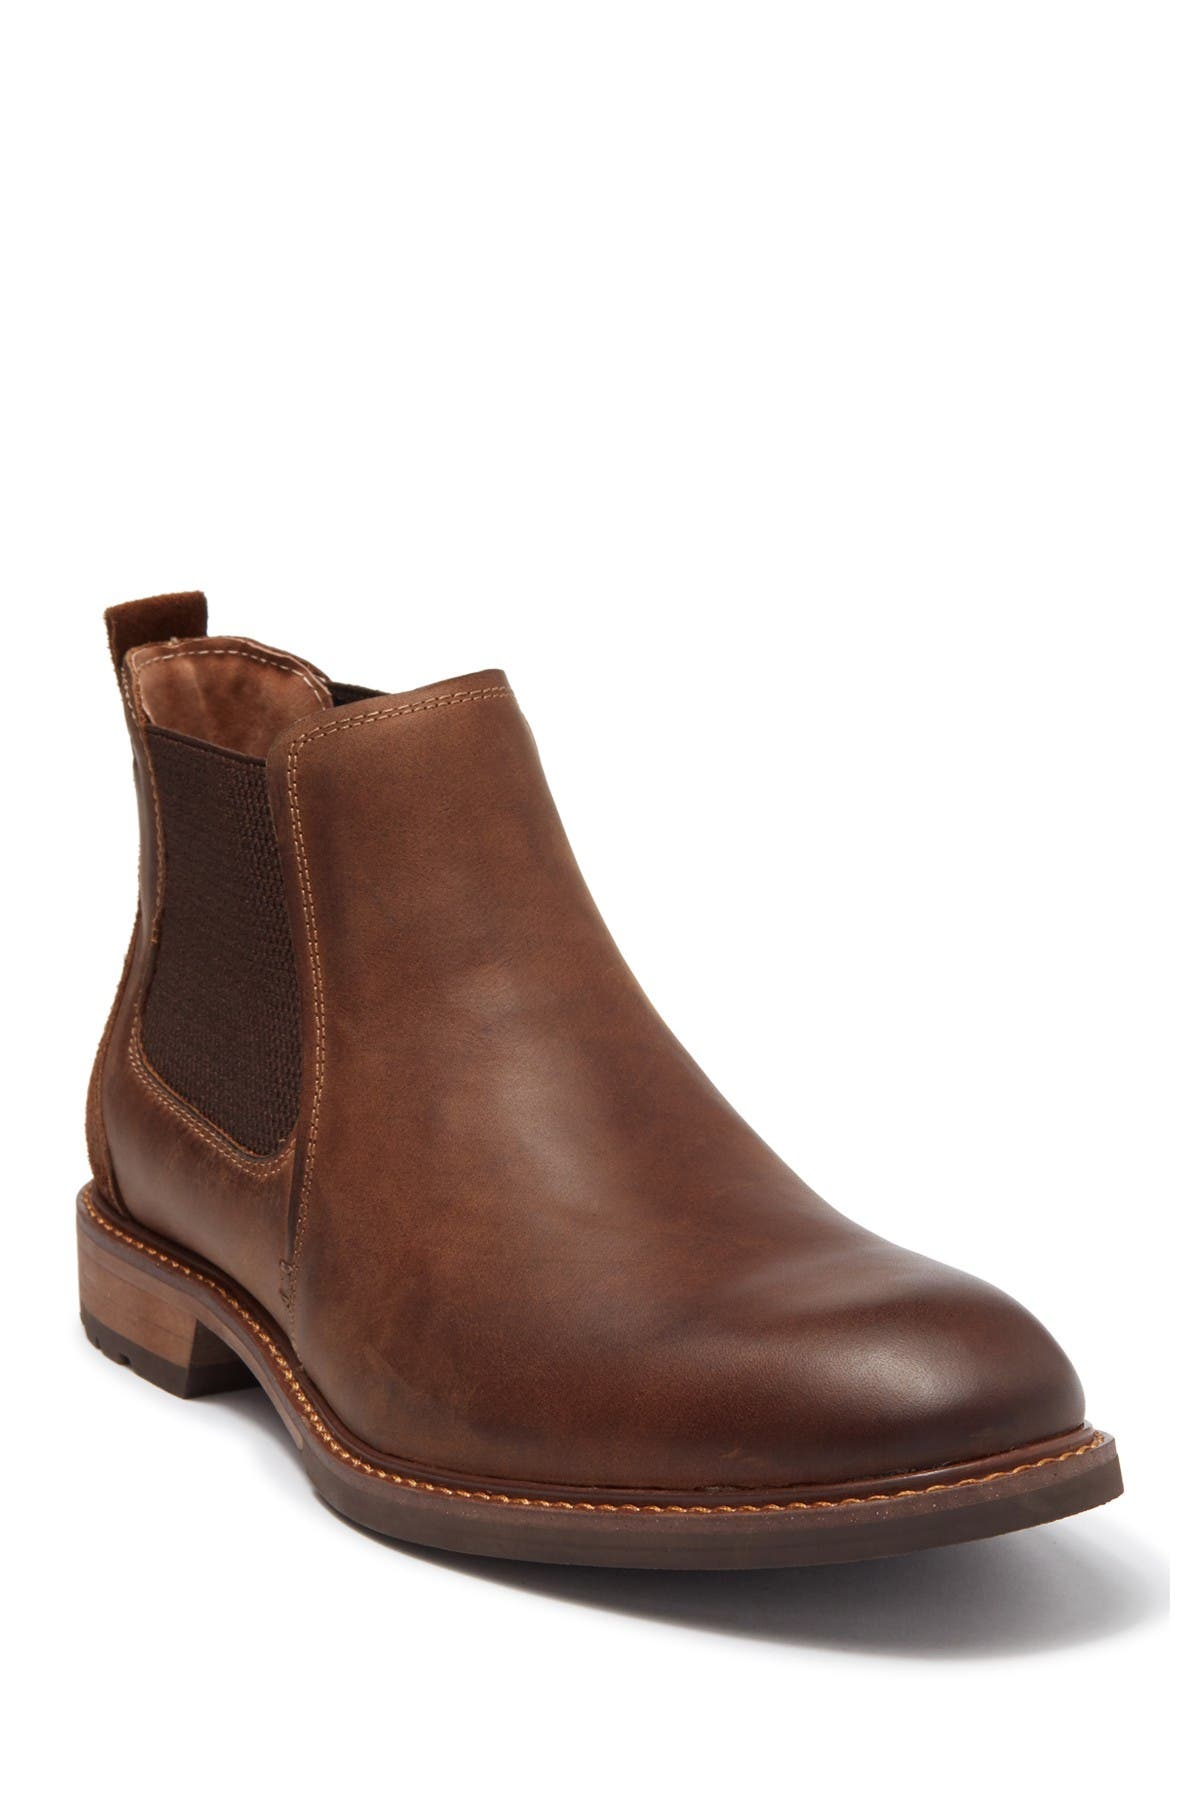 Image of Florsheim Chalet Plain Toe Leather Chelsea Boot